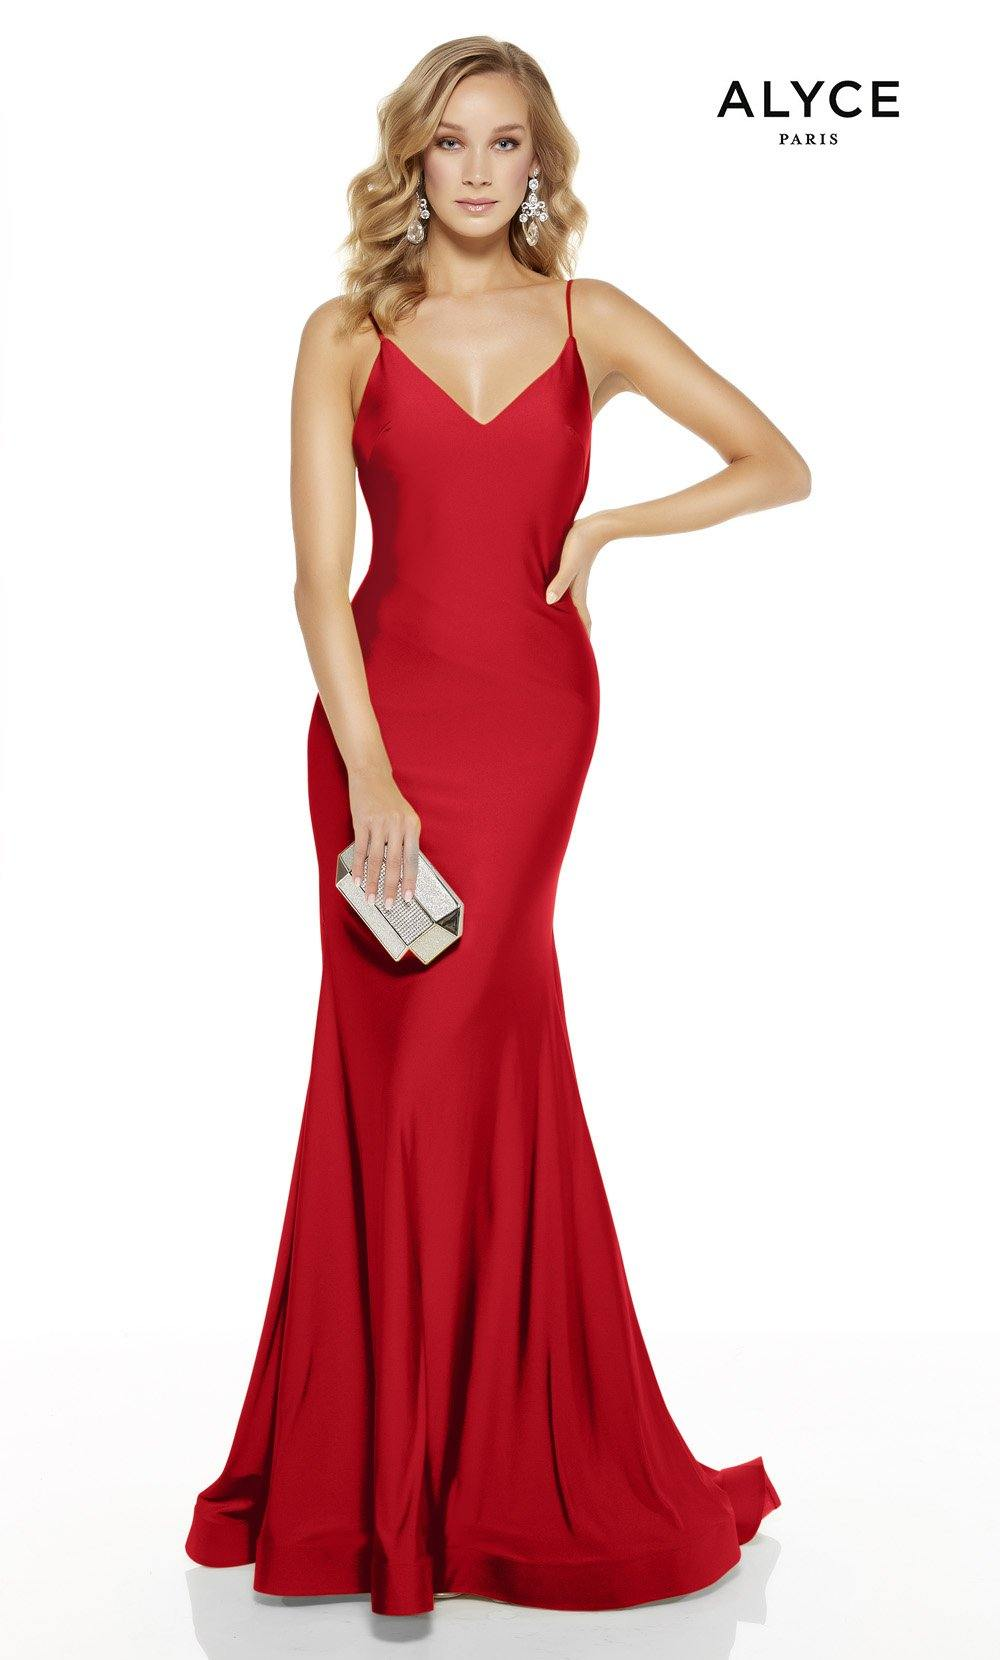 Style 60773 Alyce Paris Red Size 12 Sorority Formal Prom Mermaid Dress on Queenly